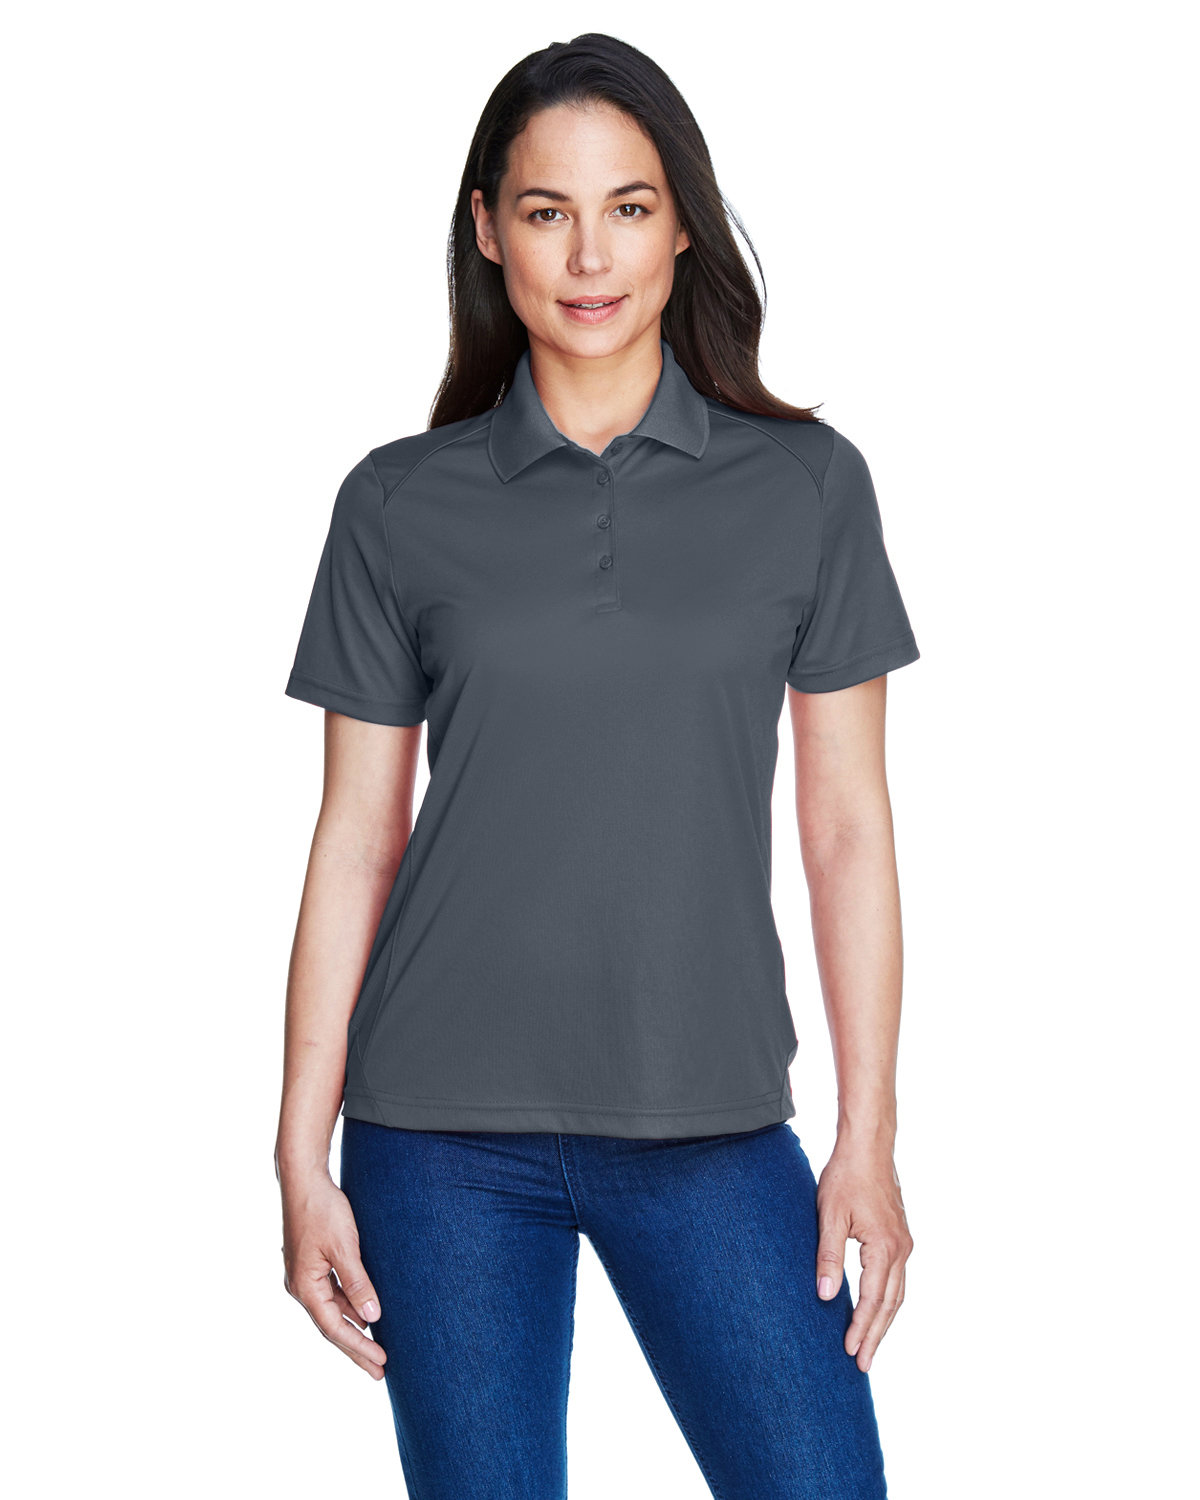 Extreme Ladies' Eperformance™ Shield Snag Protection Short-Sleeve Polo CARBON